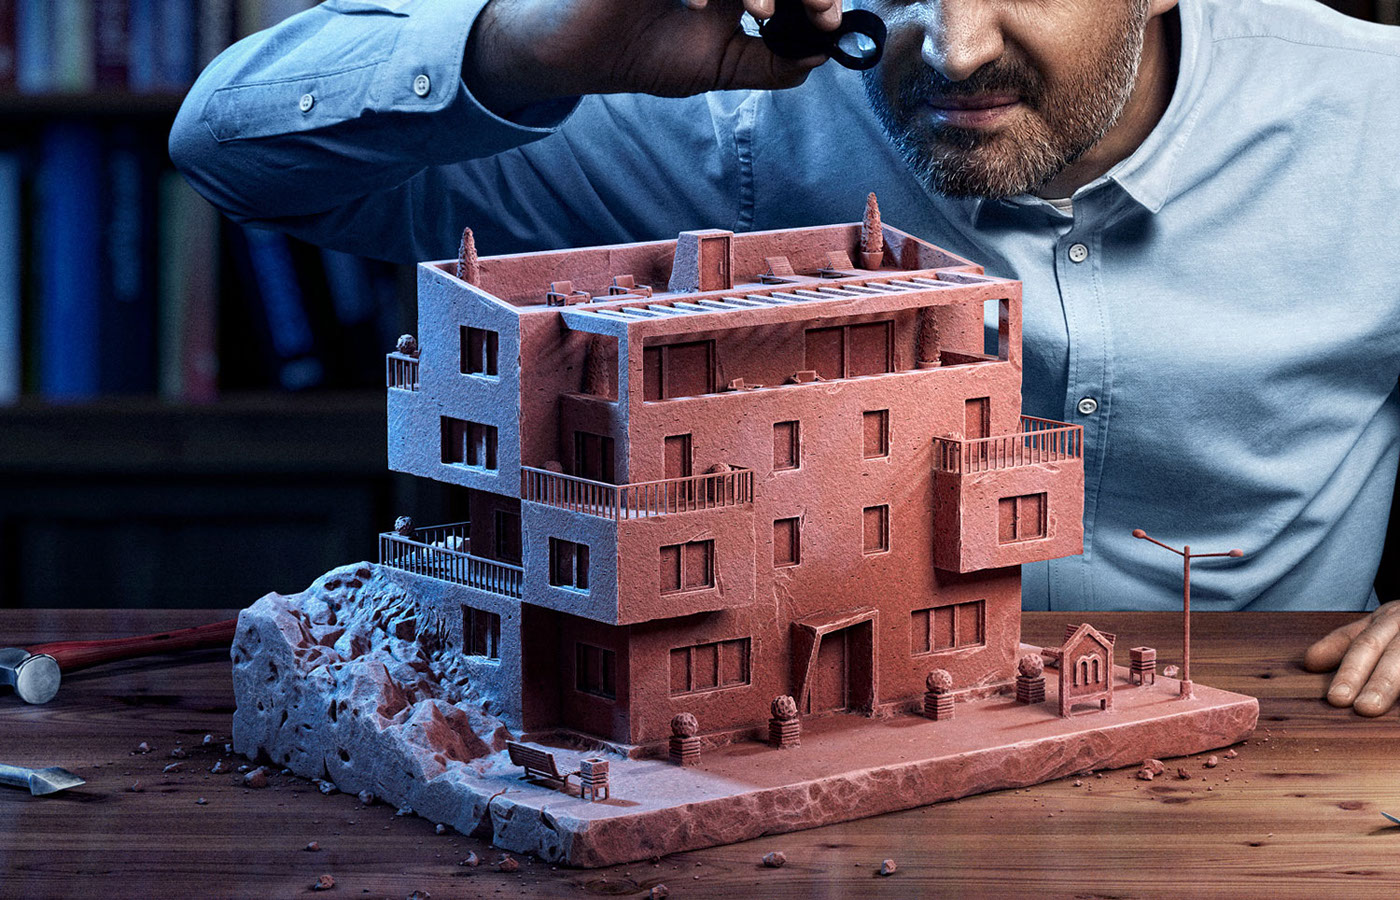 man working architecture home Photography  3D workplace craft architect Interior